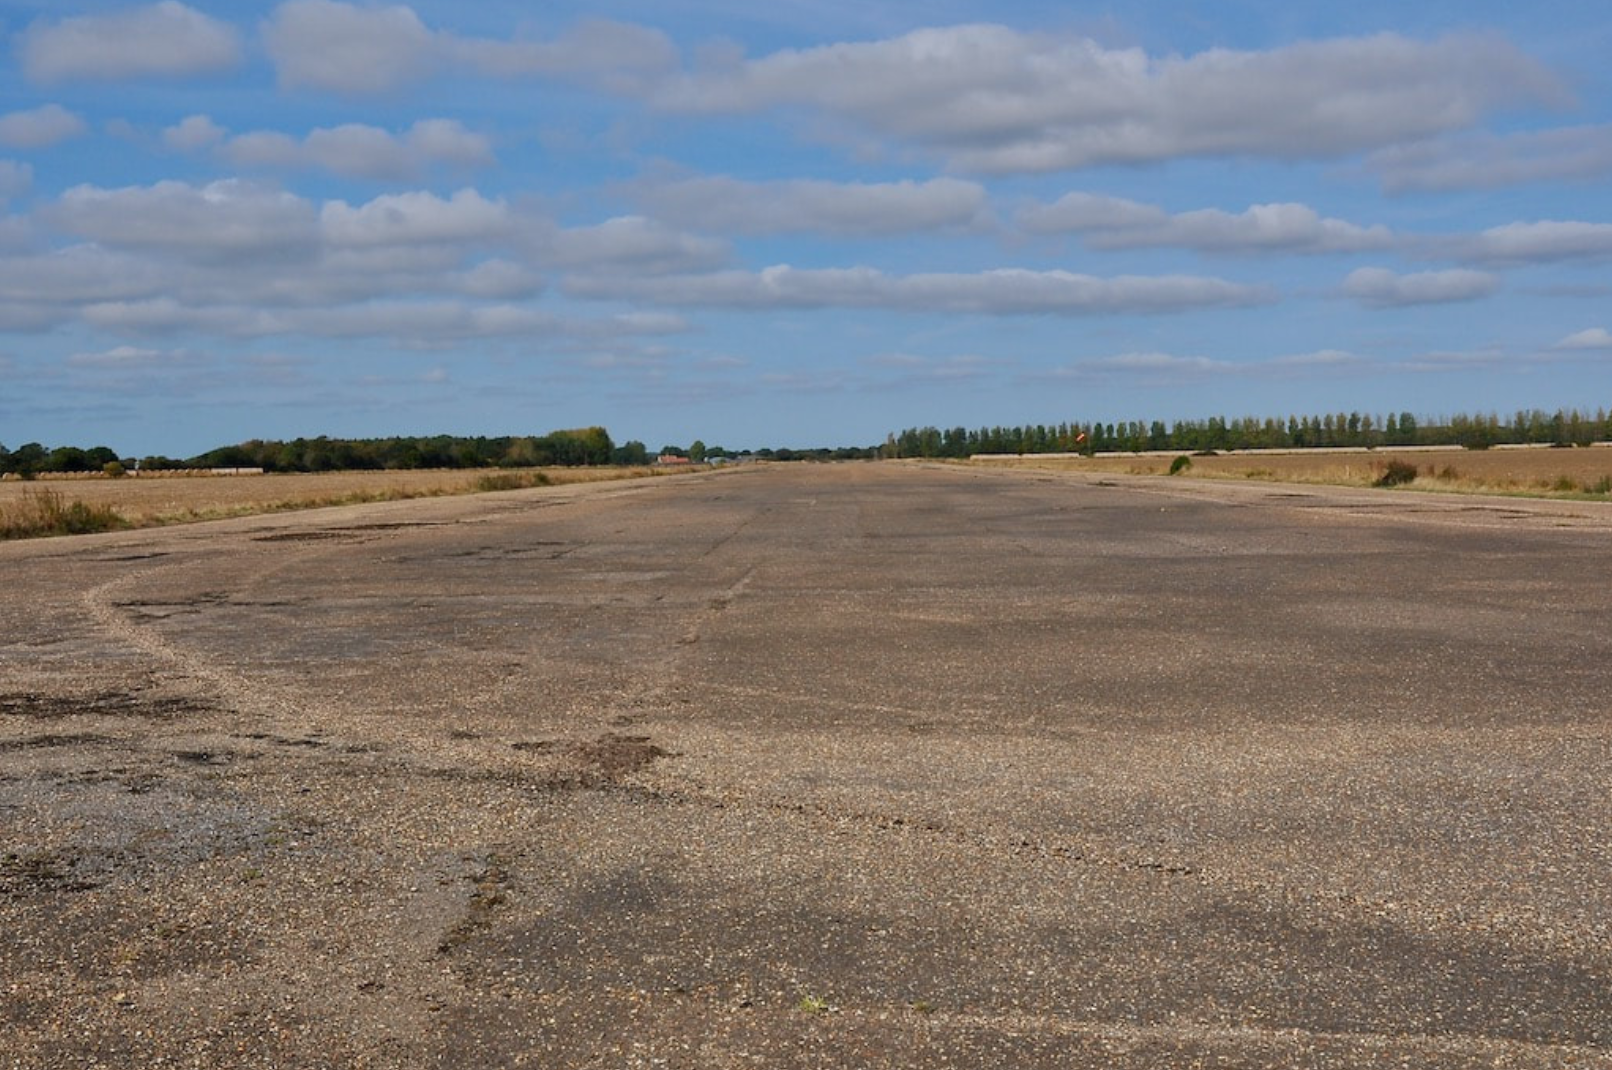 007Runway 14:32. Looking north west from the runway 32 threshold - 20 September 2009.png